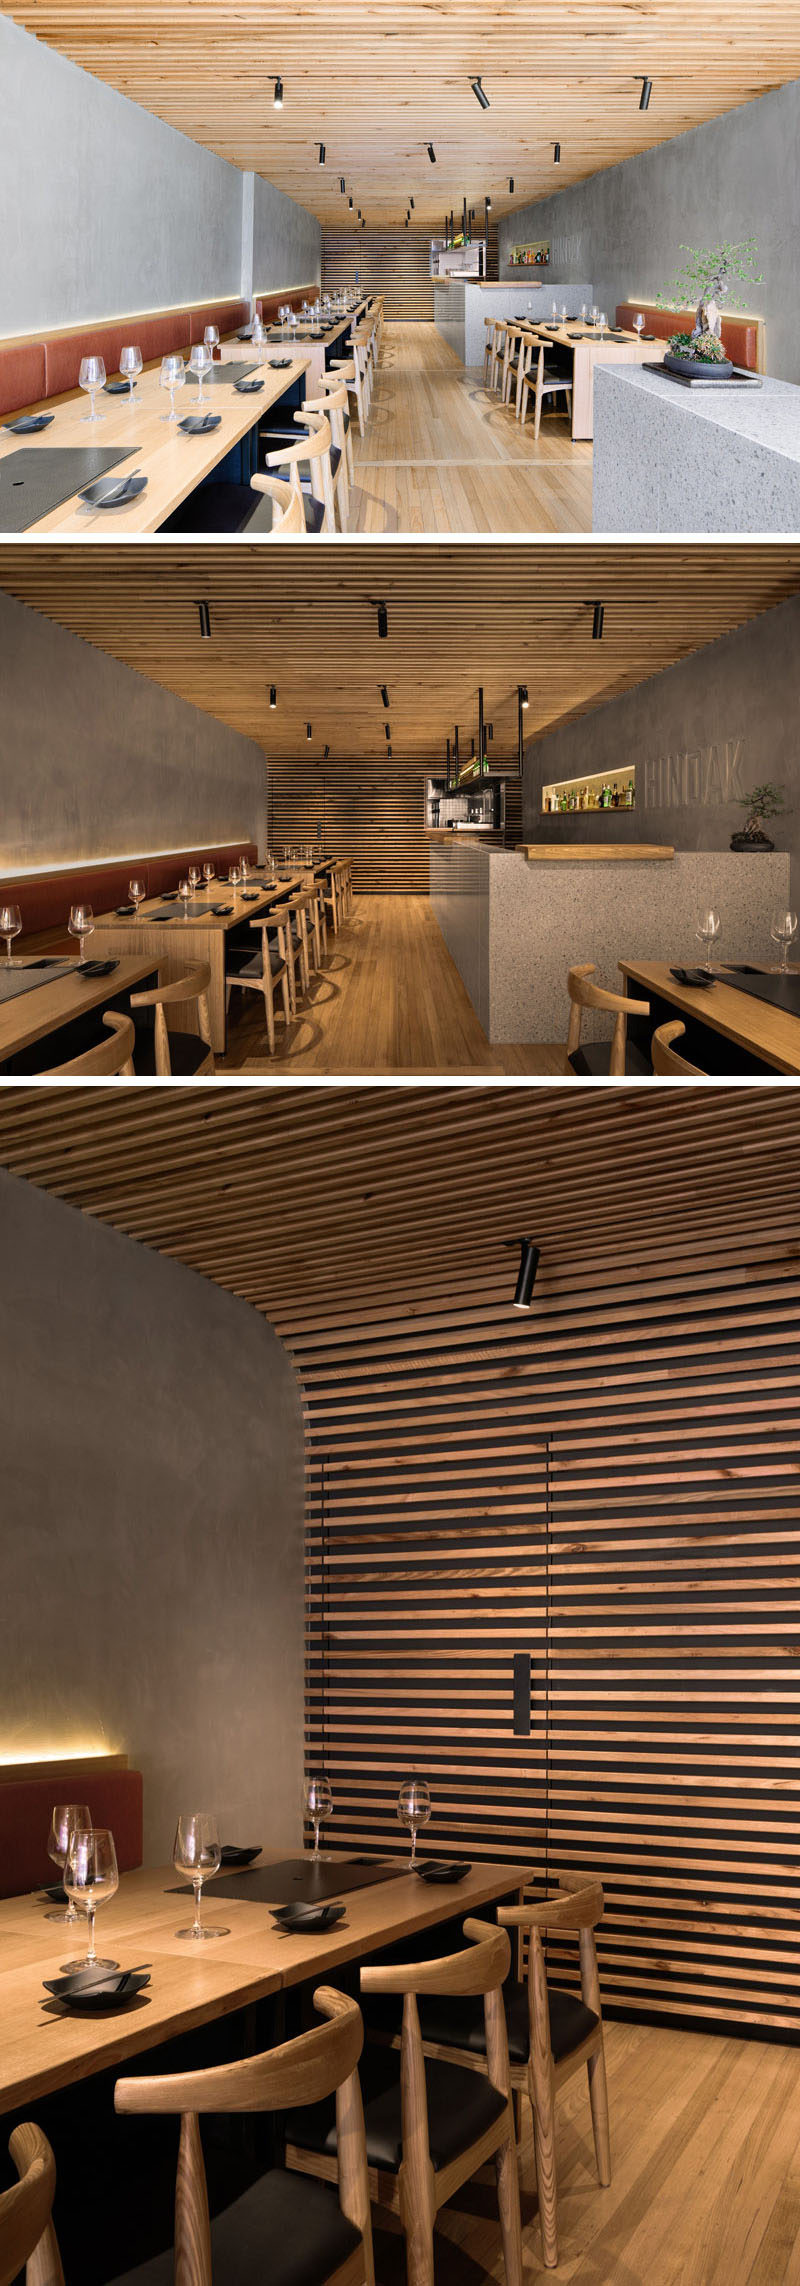 Inside this modern restaurant, the ceiling reflects elements of the finely crafted eaves of traditional Korean houses. The timber-battened ceiling descends gently from the front of the restaurant to the back, and at the end it curves into the rear wall and hides the door. #RestaurantDesign #InteriorDesign #Restaurant